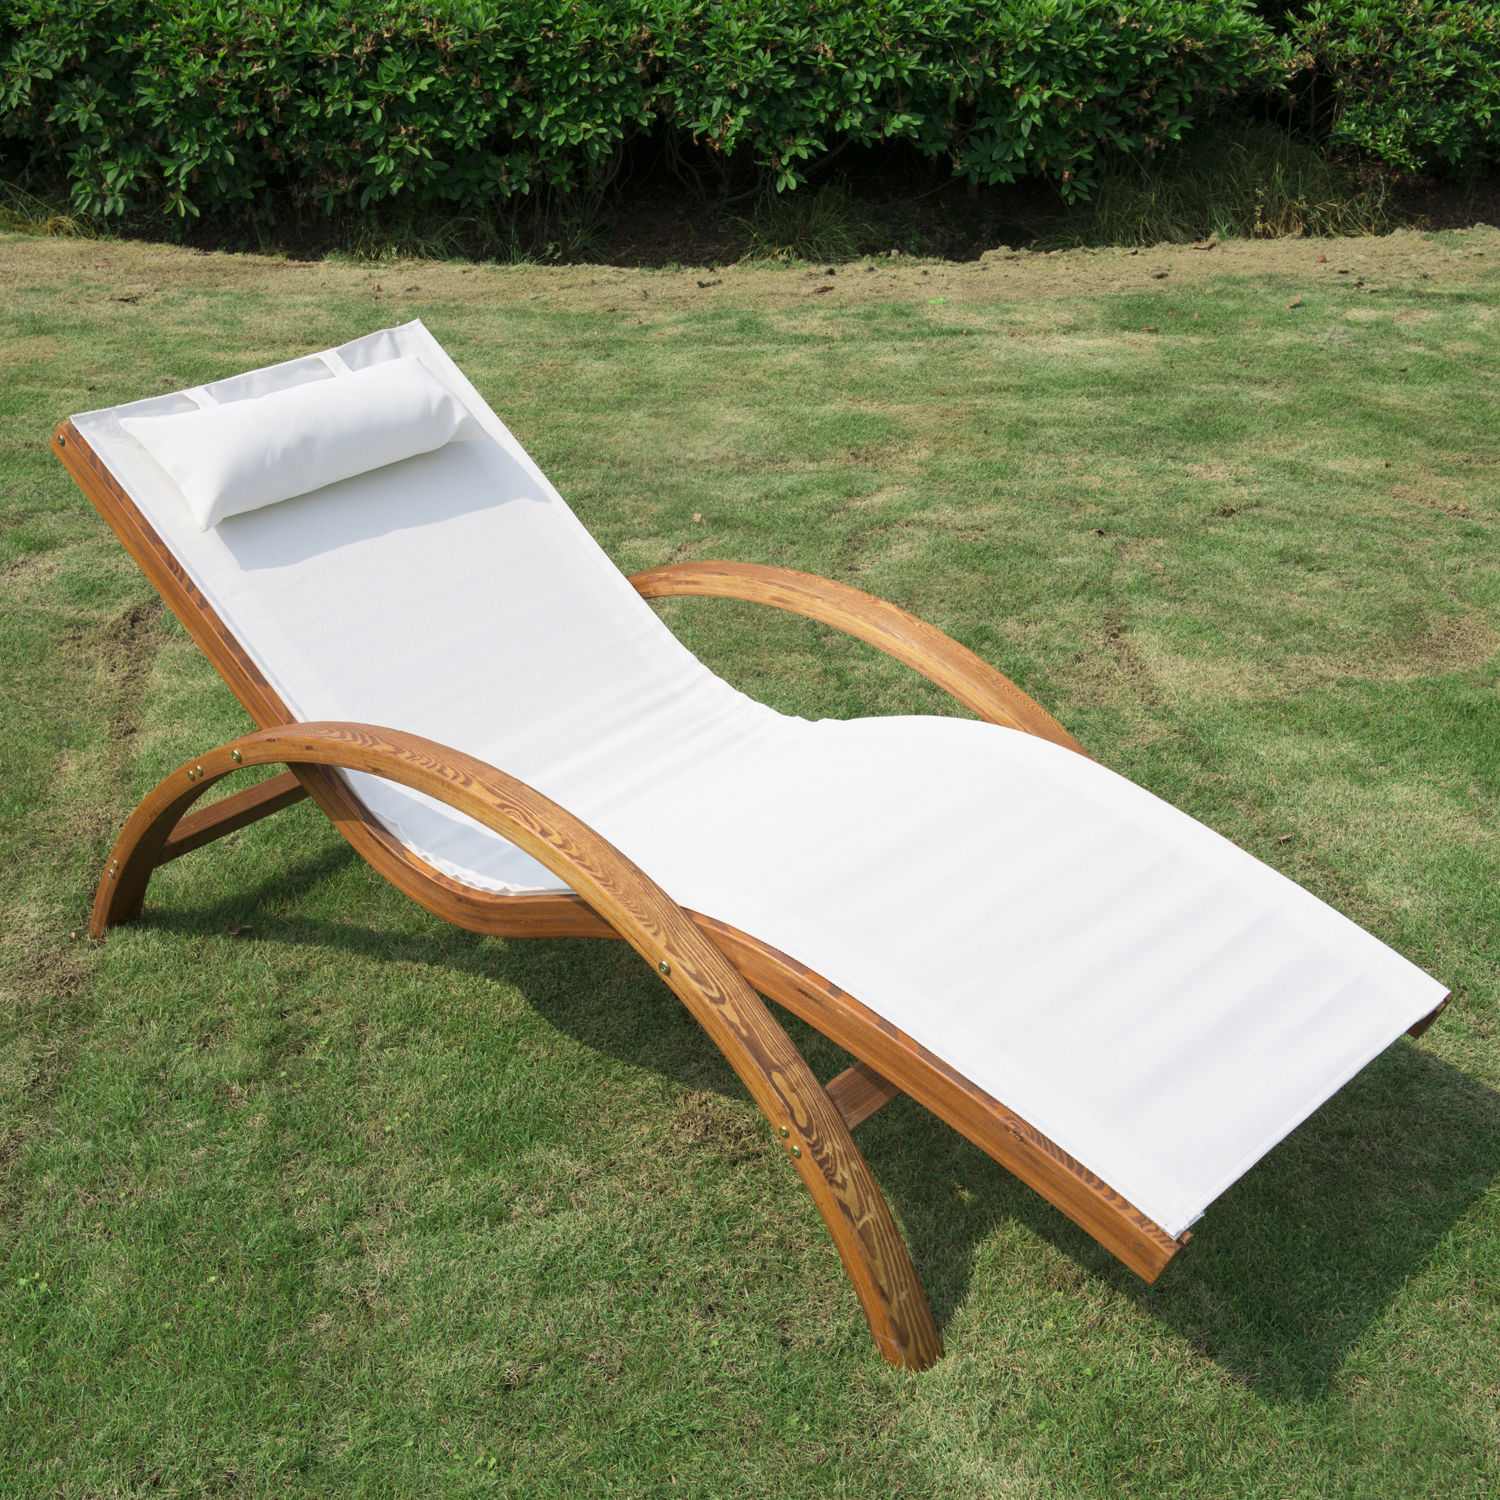 Holz Liegestuhl Wooden Patio Chaise Lounge Chair Outdoor Furniture Pool